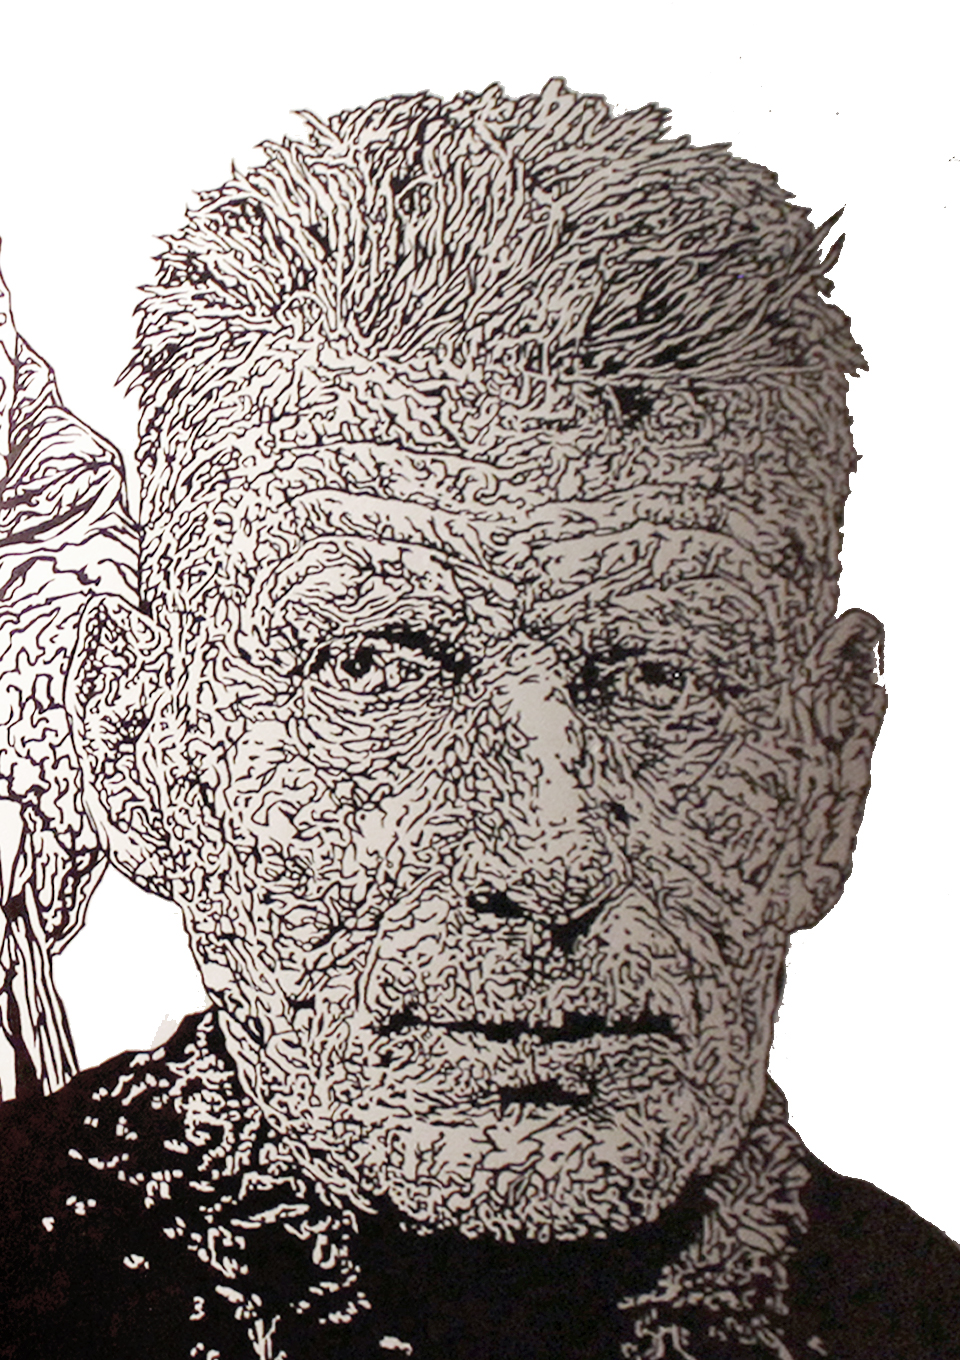 Mural graffiti wall-art illustration portraits of famous Irish authors and playwrights Oscar Wilde and Samuel Beckett, hand drawn with permanent markers in a pub / bar / restaurant in Chamonix-Mont-Blanc, France in the Alps by Berlin-based artist John Rooney